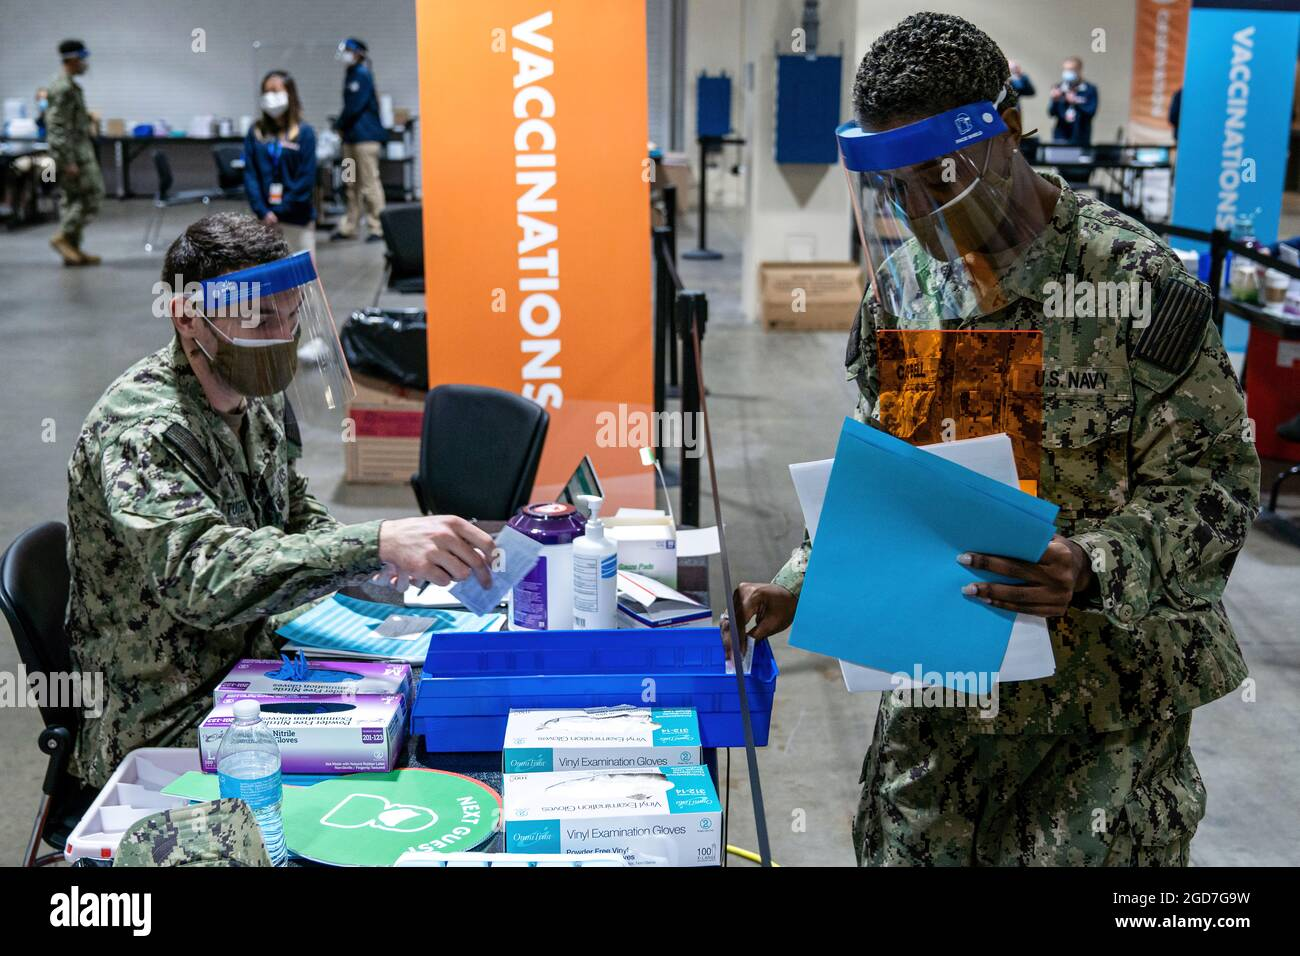 U.S. Navy Hospitalman Matthew Tuten (left), a native of Wichita Falls, Texas, and U.S. Navy Hospitalman Kenecha Campbell (right), a native of Orlando, Florida, assigned to Naval Medical Center Portsmouth, Virginia, refill COVID-19 vaccine supplies at their assigned stations at the Hynes Convention Center COVID-19 Community Vaccine Center in Boston, April 2, 2021. U.S. Navy Sailors from across the country are deployed in support of Department of Defense federal vaccine response efforts. U.S. Northern Command, through U.S. Army North, remains committed to providing continued, flexible DoD suppor Stock Photo